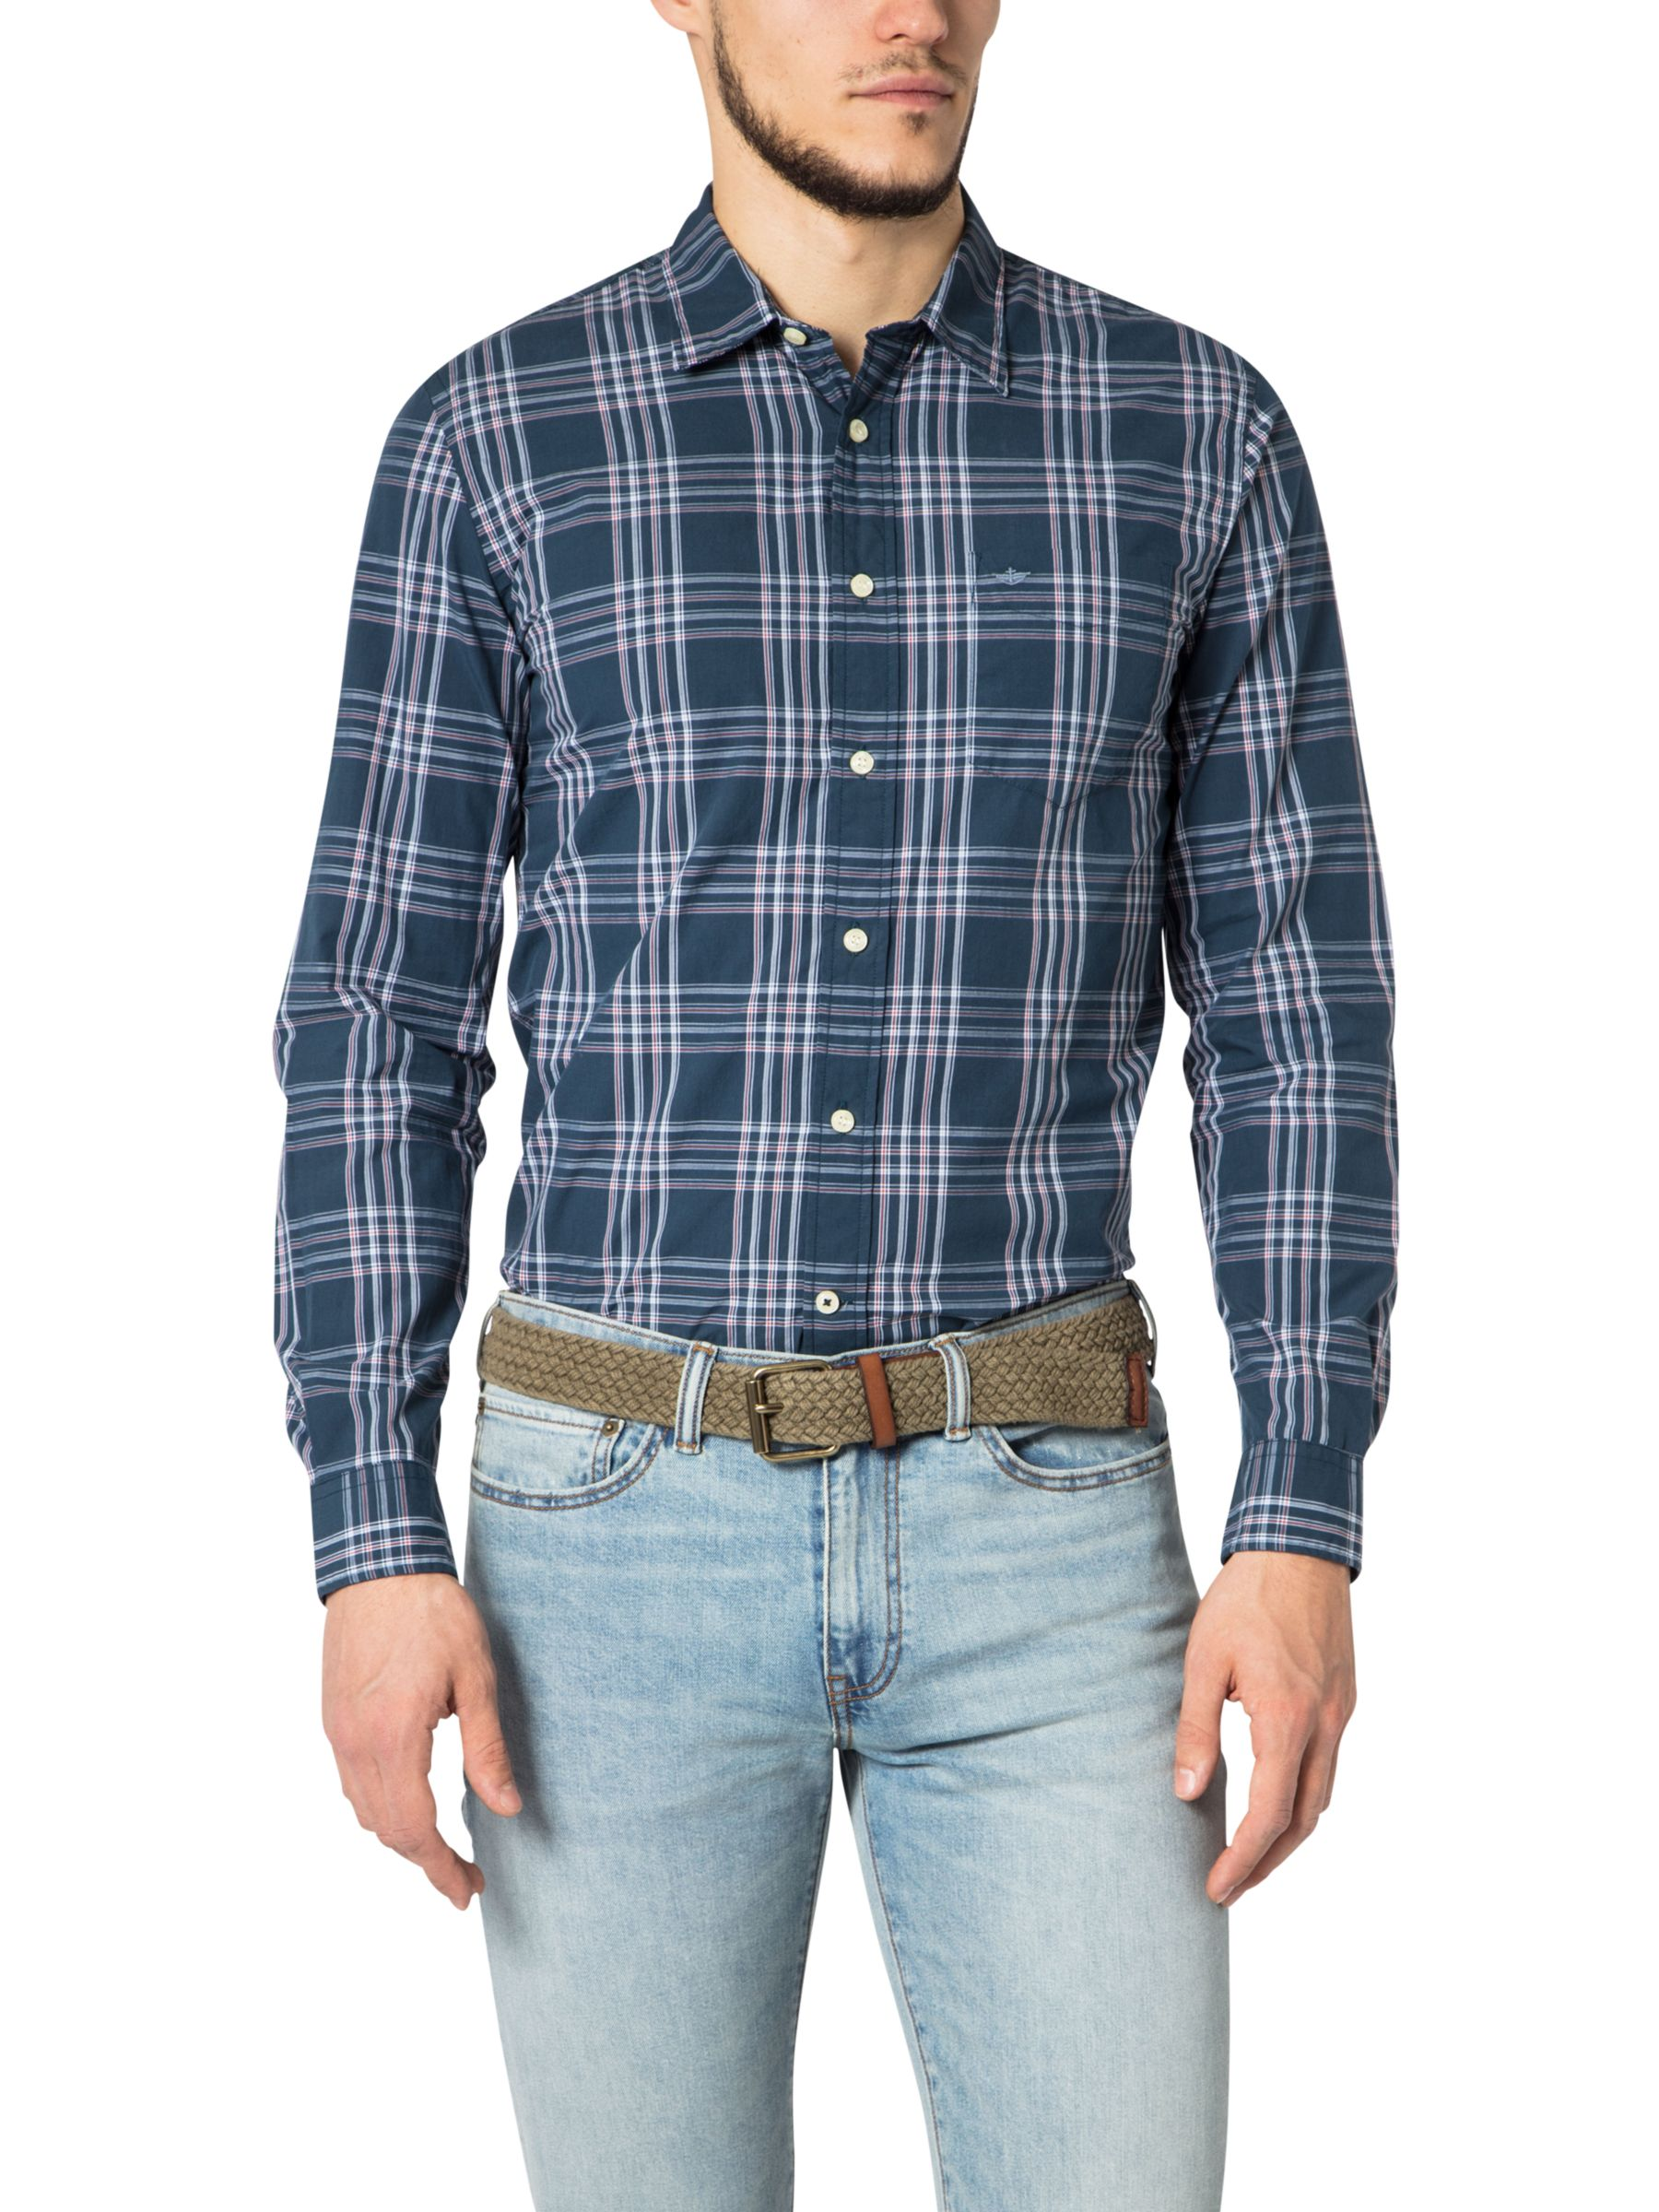 Dockers Dockers Poplin Check Laundered Shirt, Abbott Moonlit Ocean